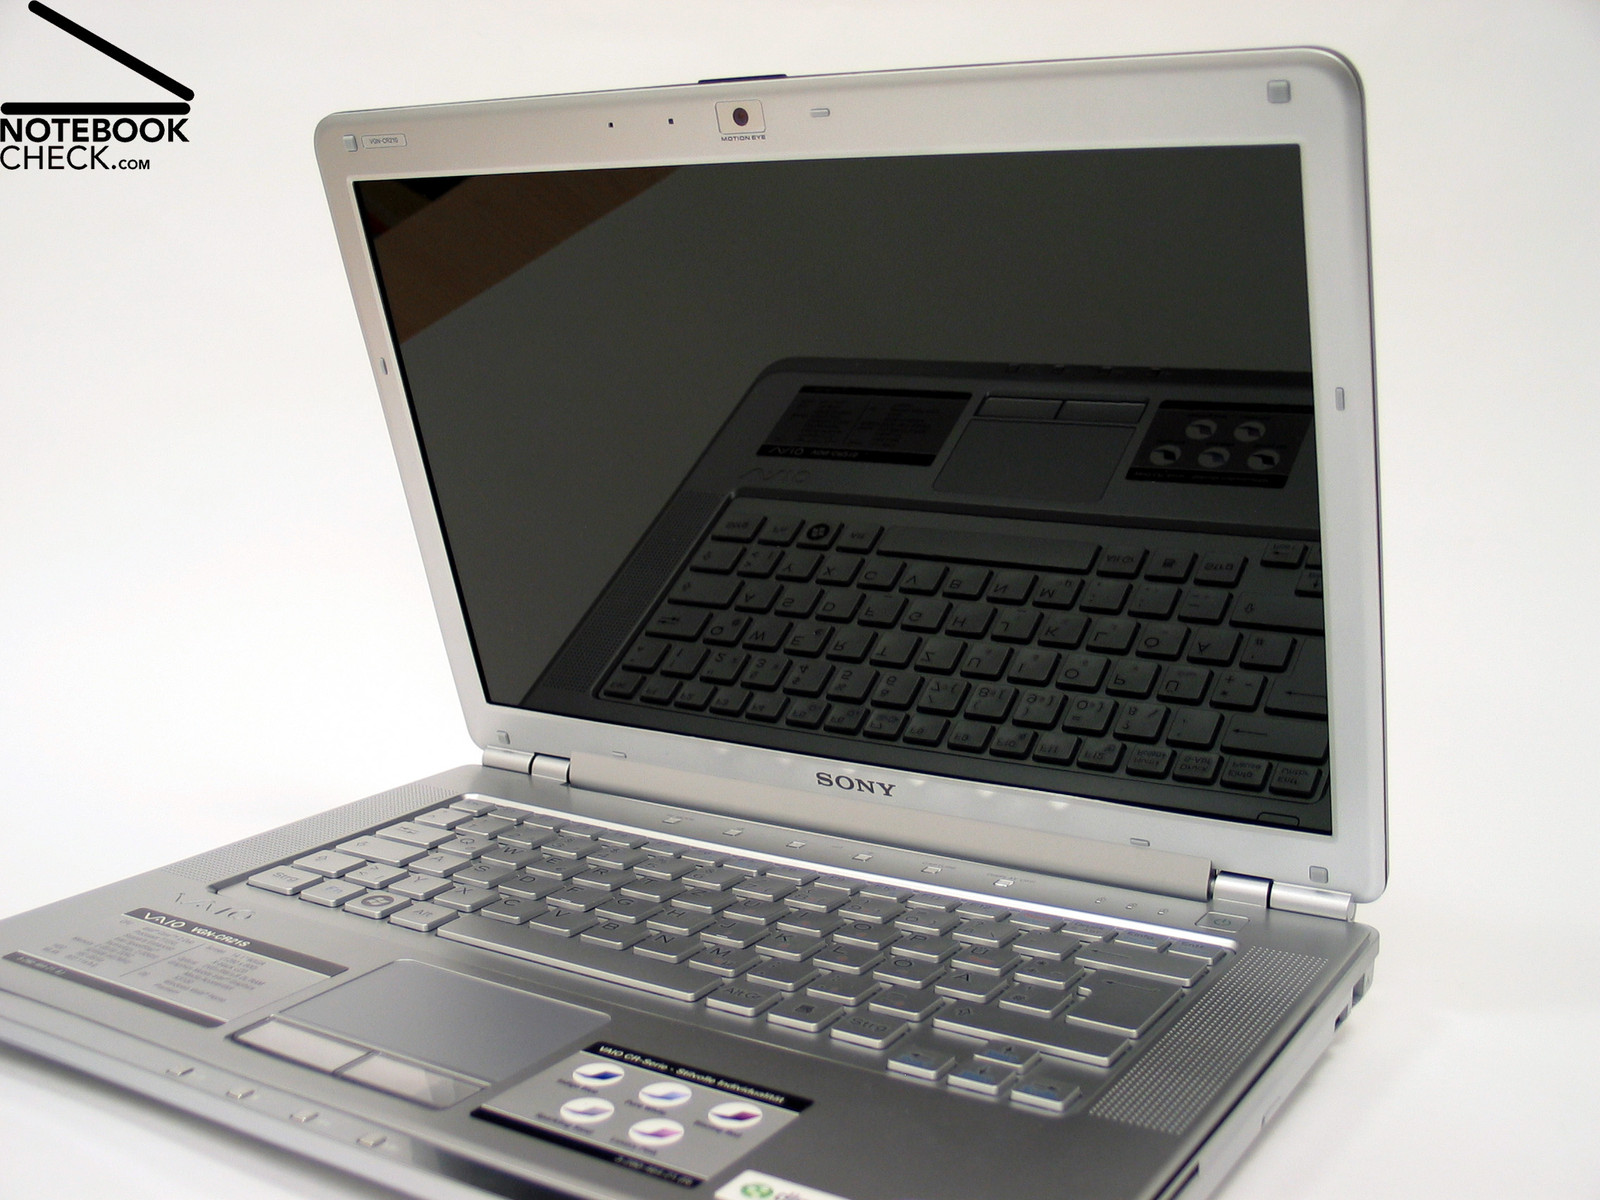 Test Sony Vaio VGN-CR21S Notebook - Notebookcheck.com Tests